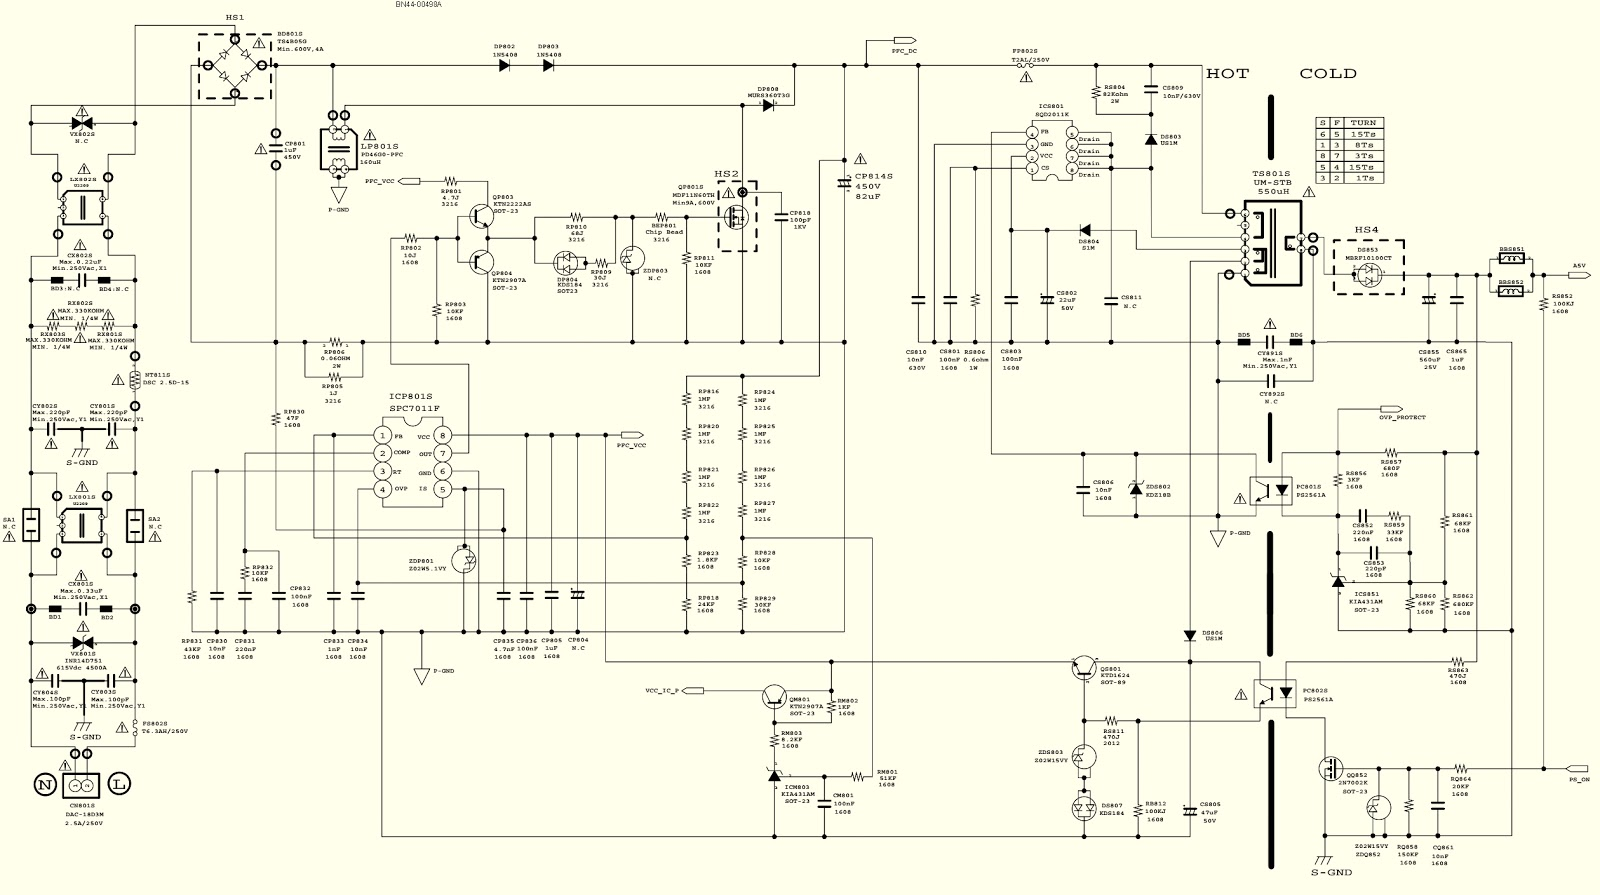 samsung led lcd tv un46eh6000f power supply led board bn44 00498a led circuit diagram samsung [ 1600 x 895 Pixel ]